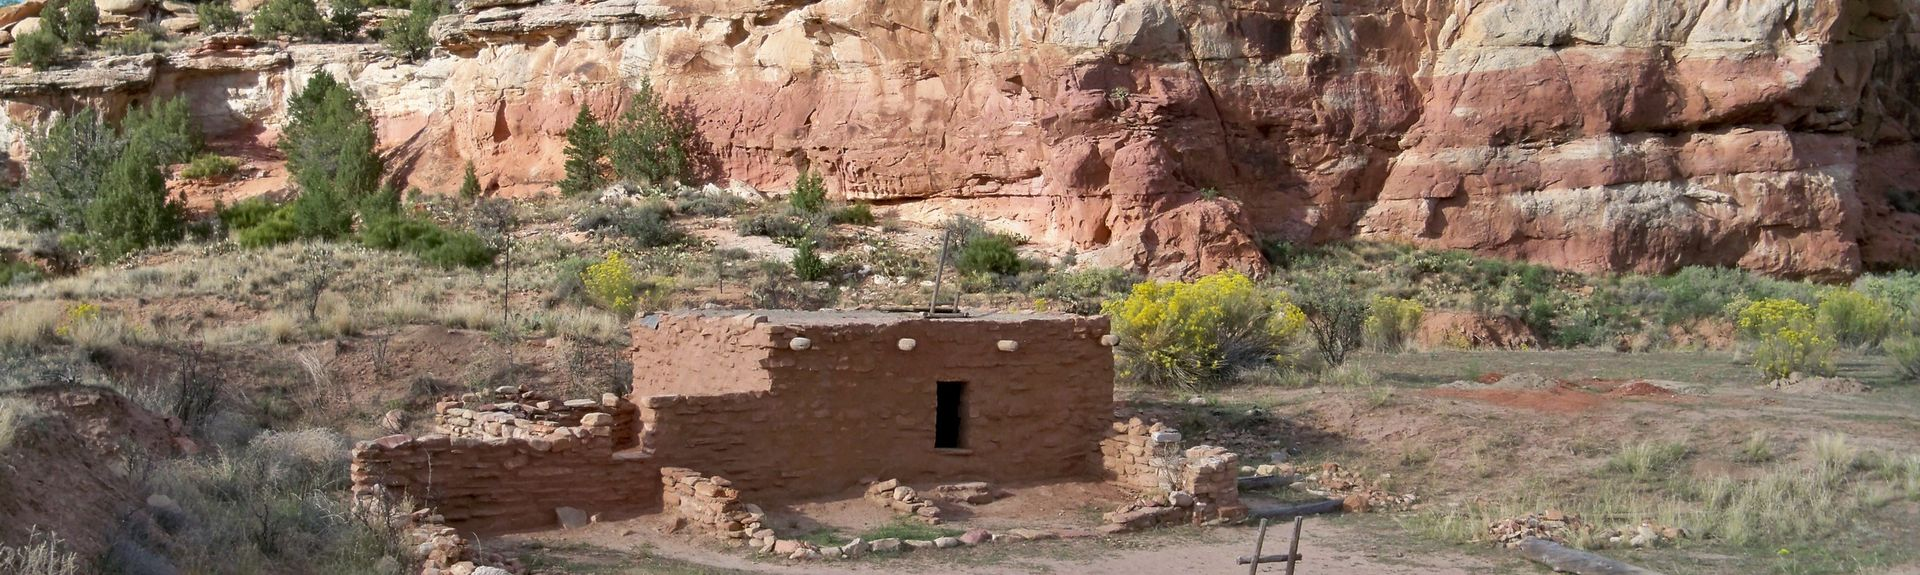 Spruce Tree House, Mesa Verde National Park, CO, USA